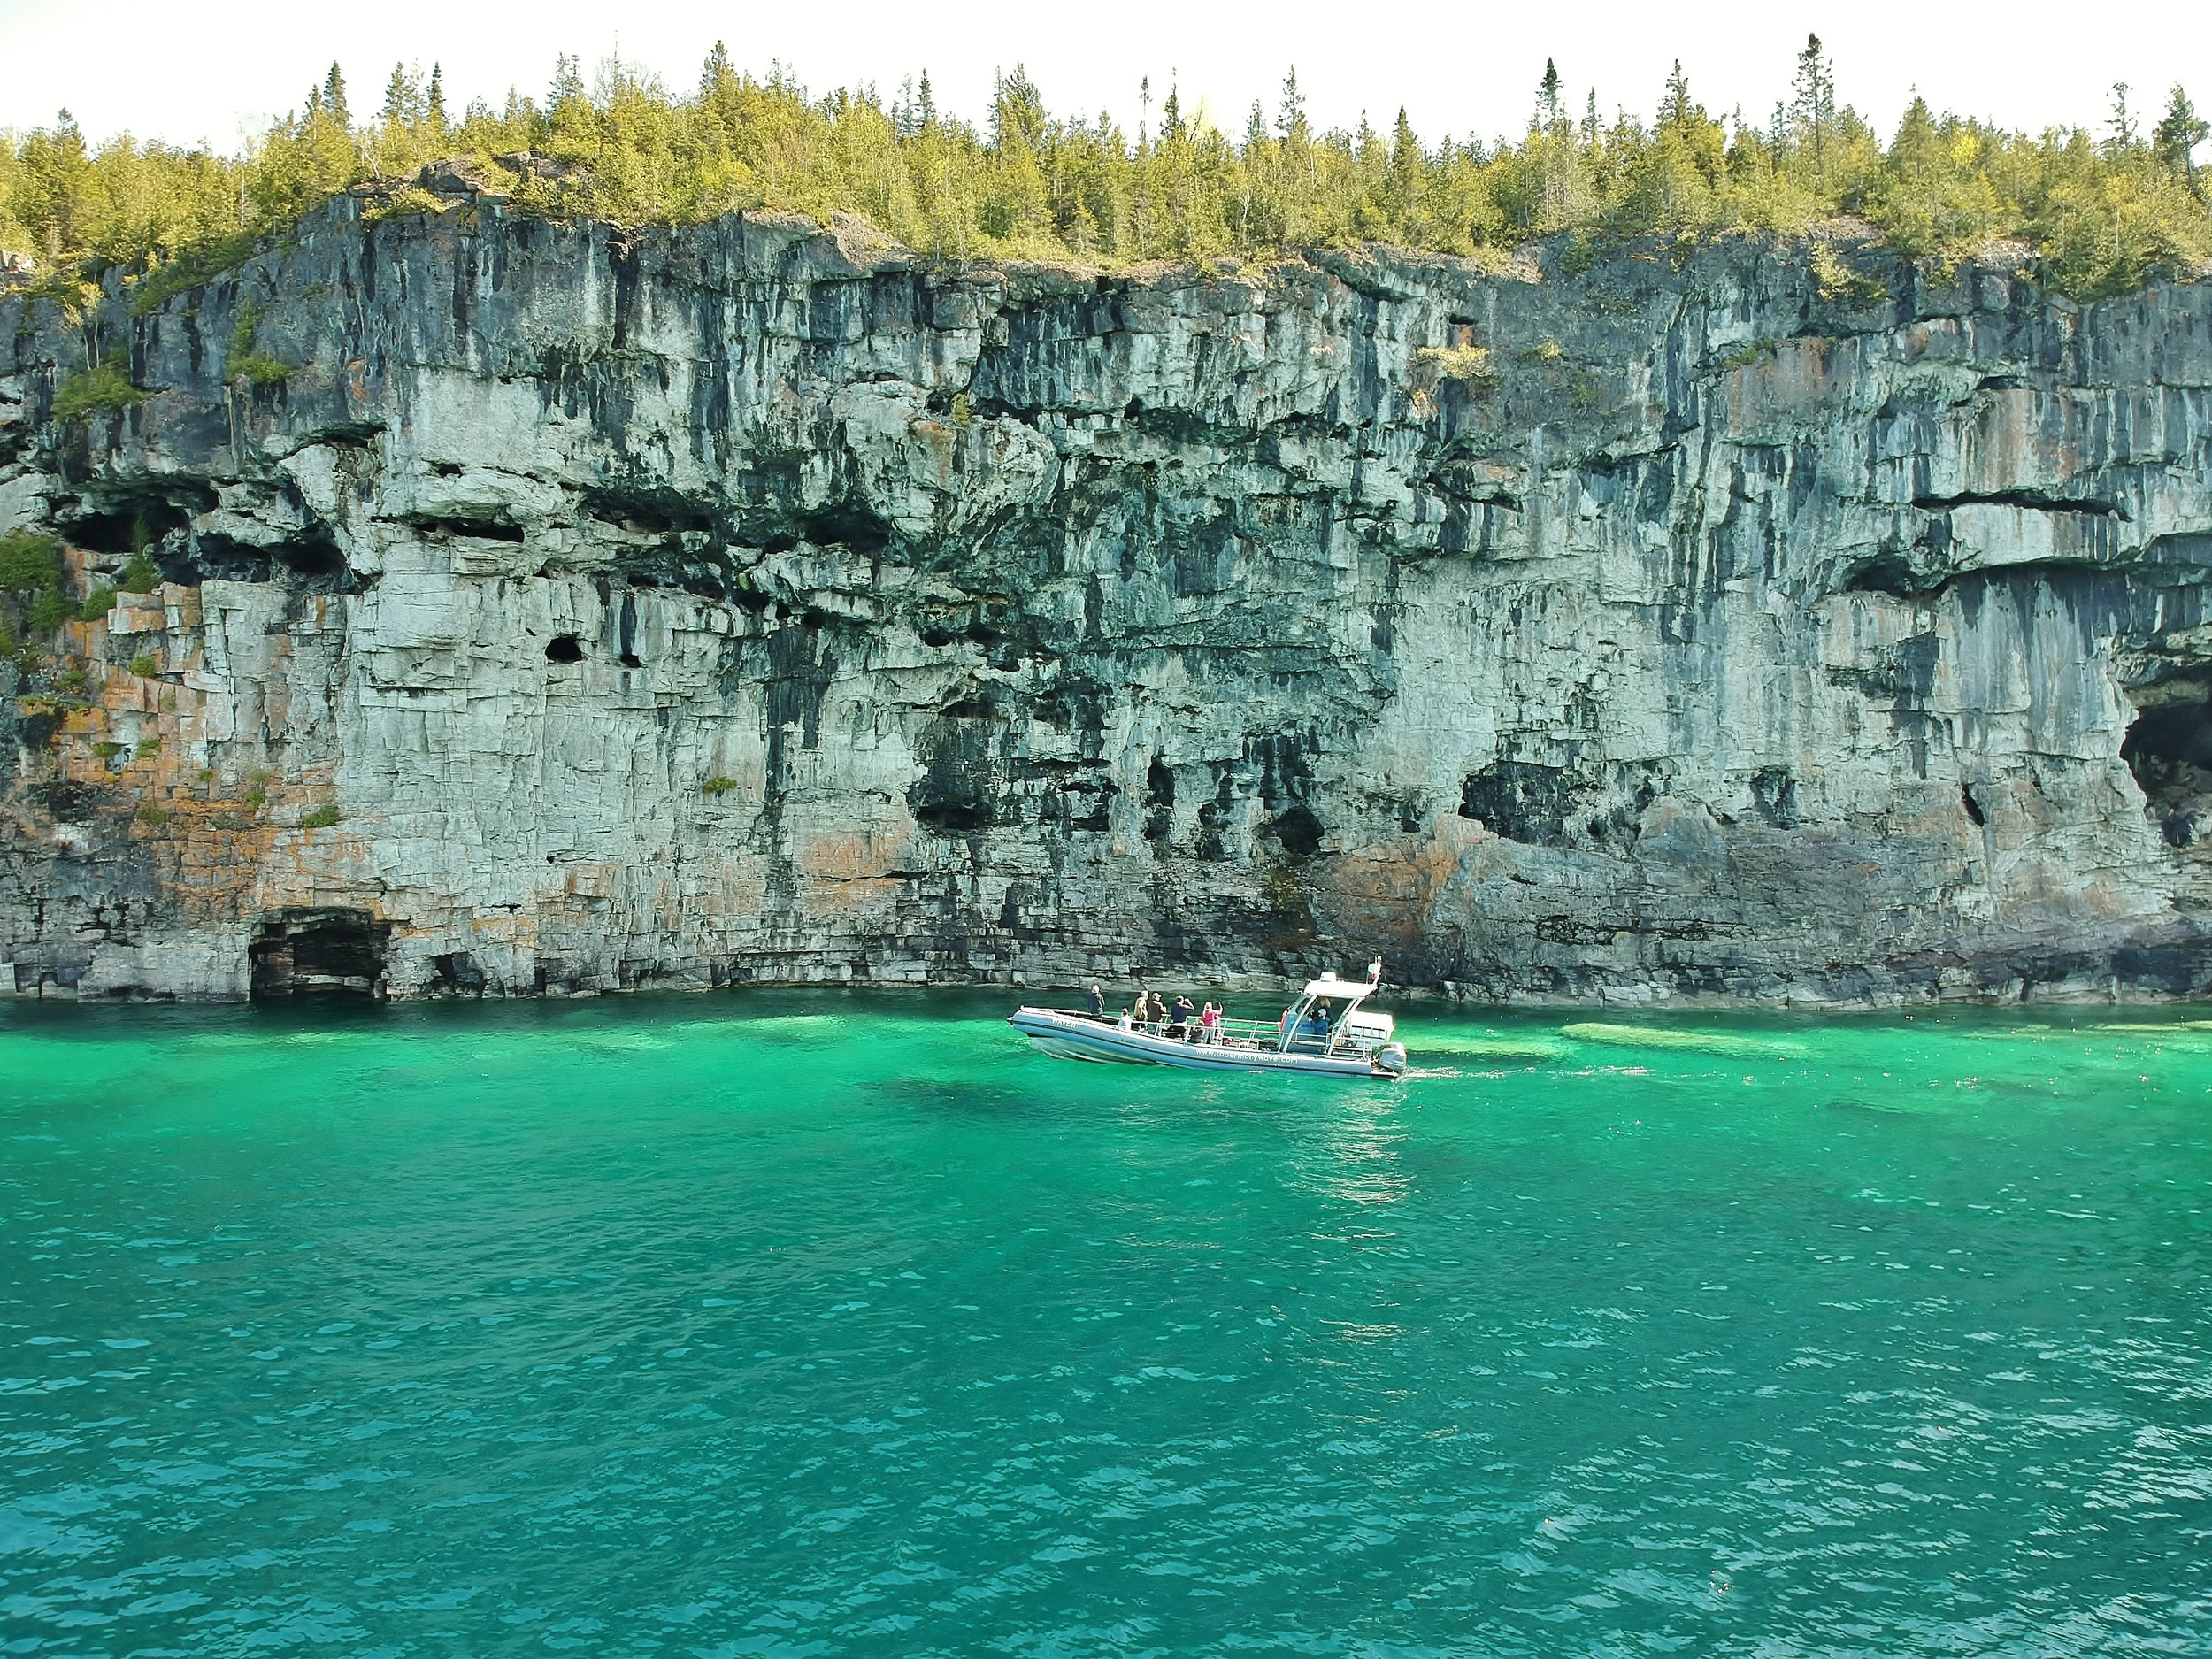 Deluxe Wave Tour - Do you want to experience more of the National Park than anyone else? See several destinations like Flowerpot Island, The Grotto and spectacular Cave Point on this exclusive 3 hour guided tour. Private tour option. Cancellation & fine print.Adults $56 - Seniors $53 - Child $49